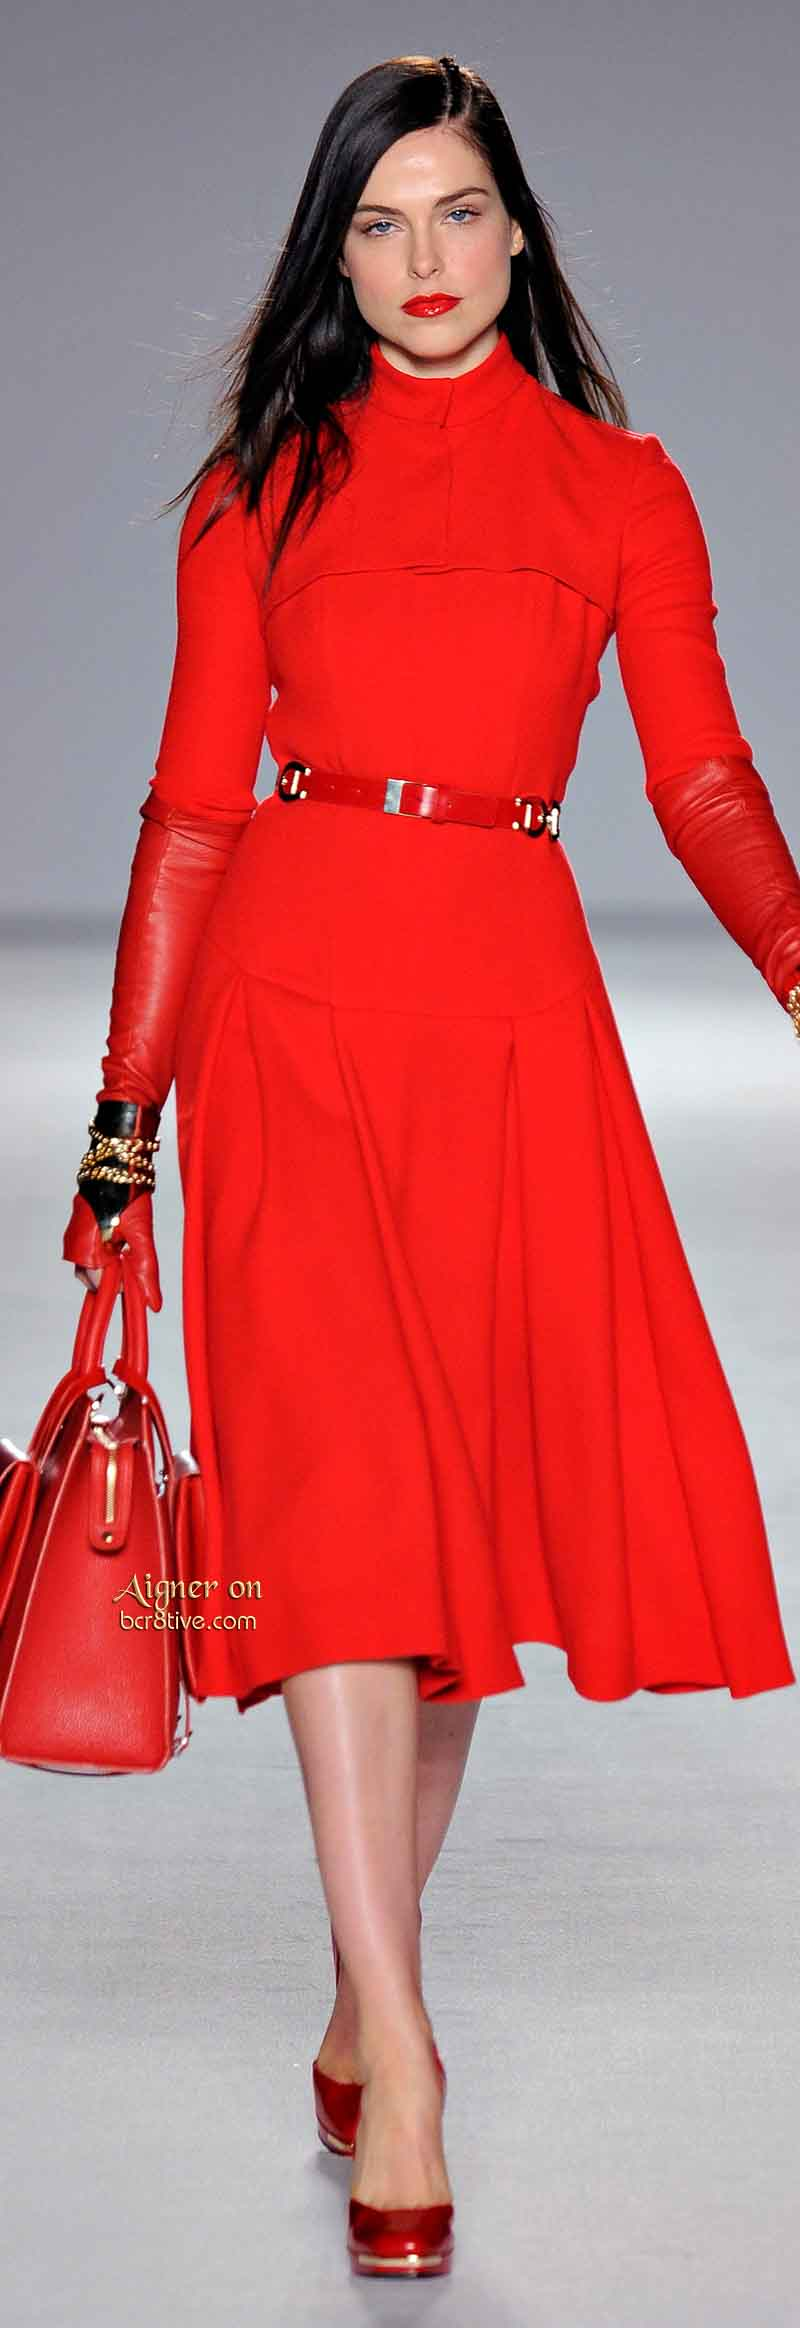 Aigner Fall Winter 2014-15 RTW